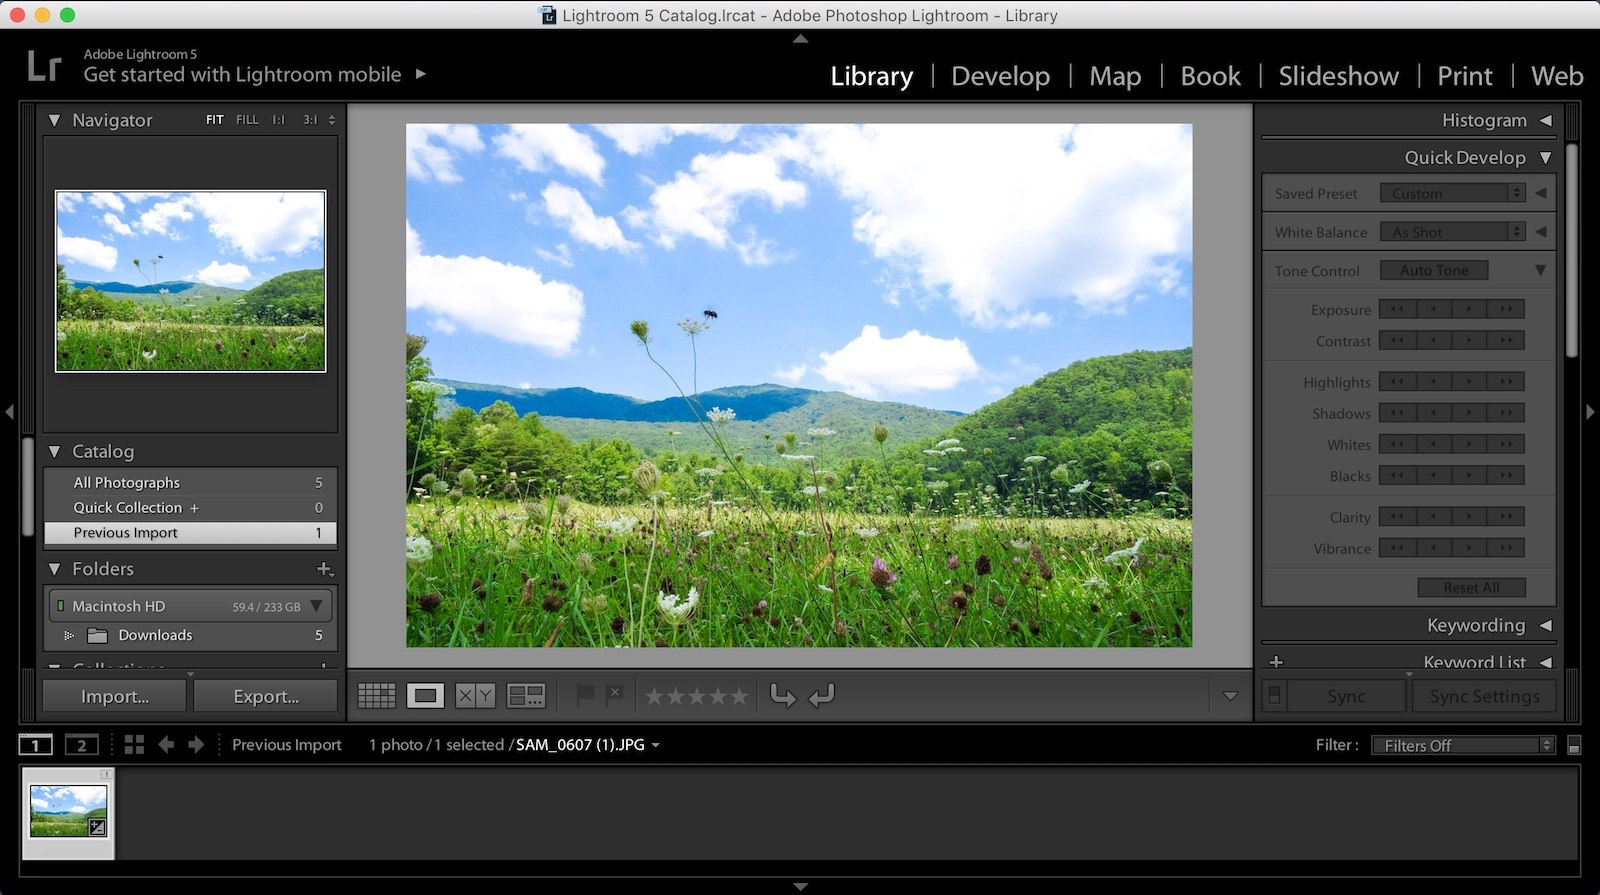 Aurora HDR vs Lightroom - Adobe Lightroom v5.5 User Interface